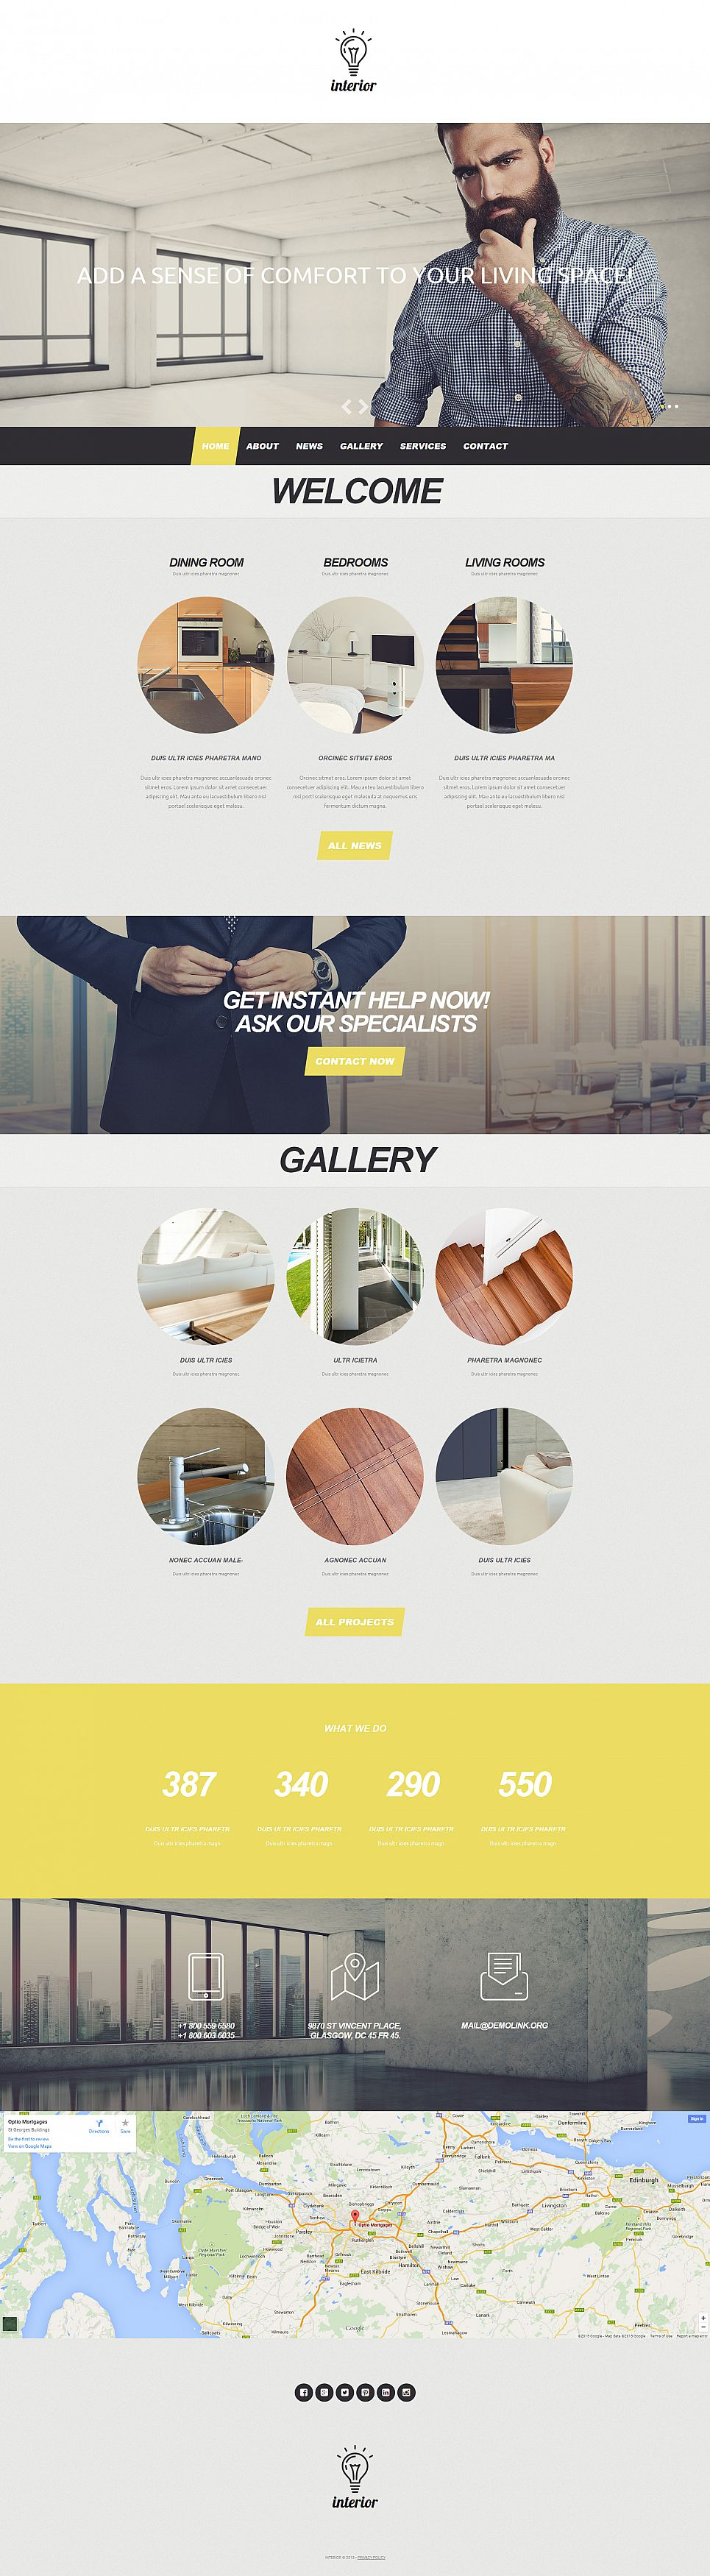 Interior Design Site Template - image